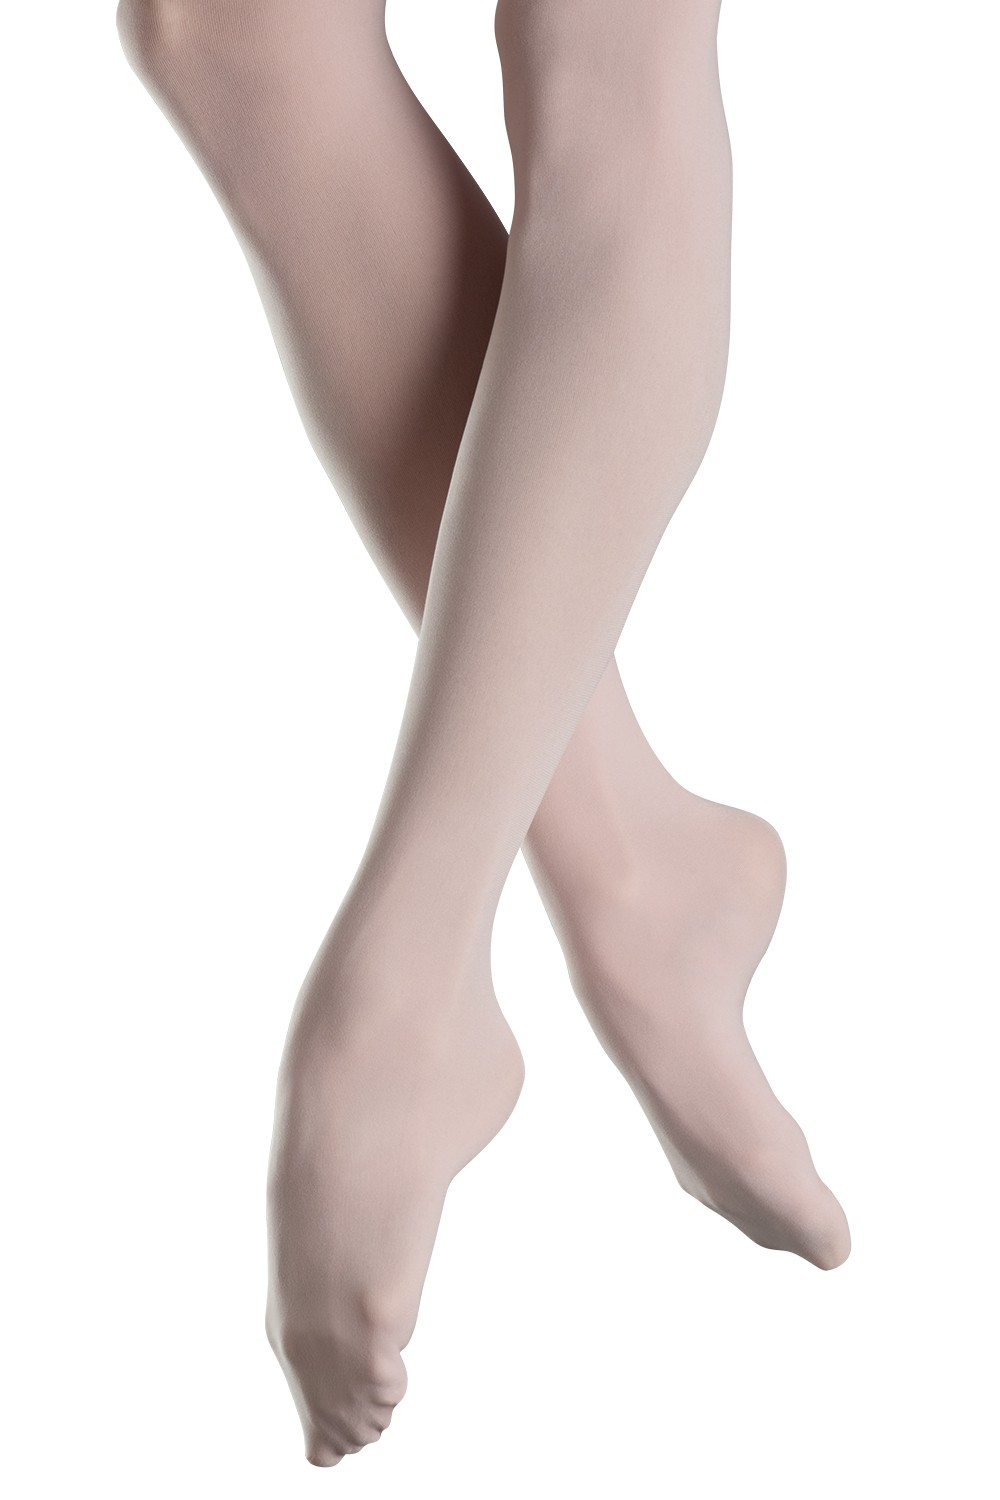 3fbf3181d19e8 BLOCH® Women's Ballet & Dance Tights - BLOCH® US Store